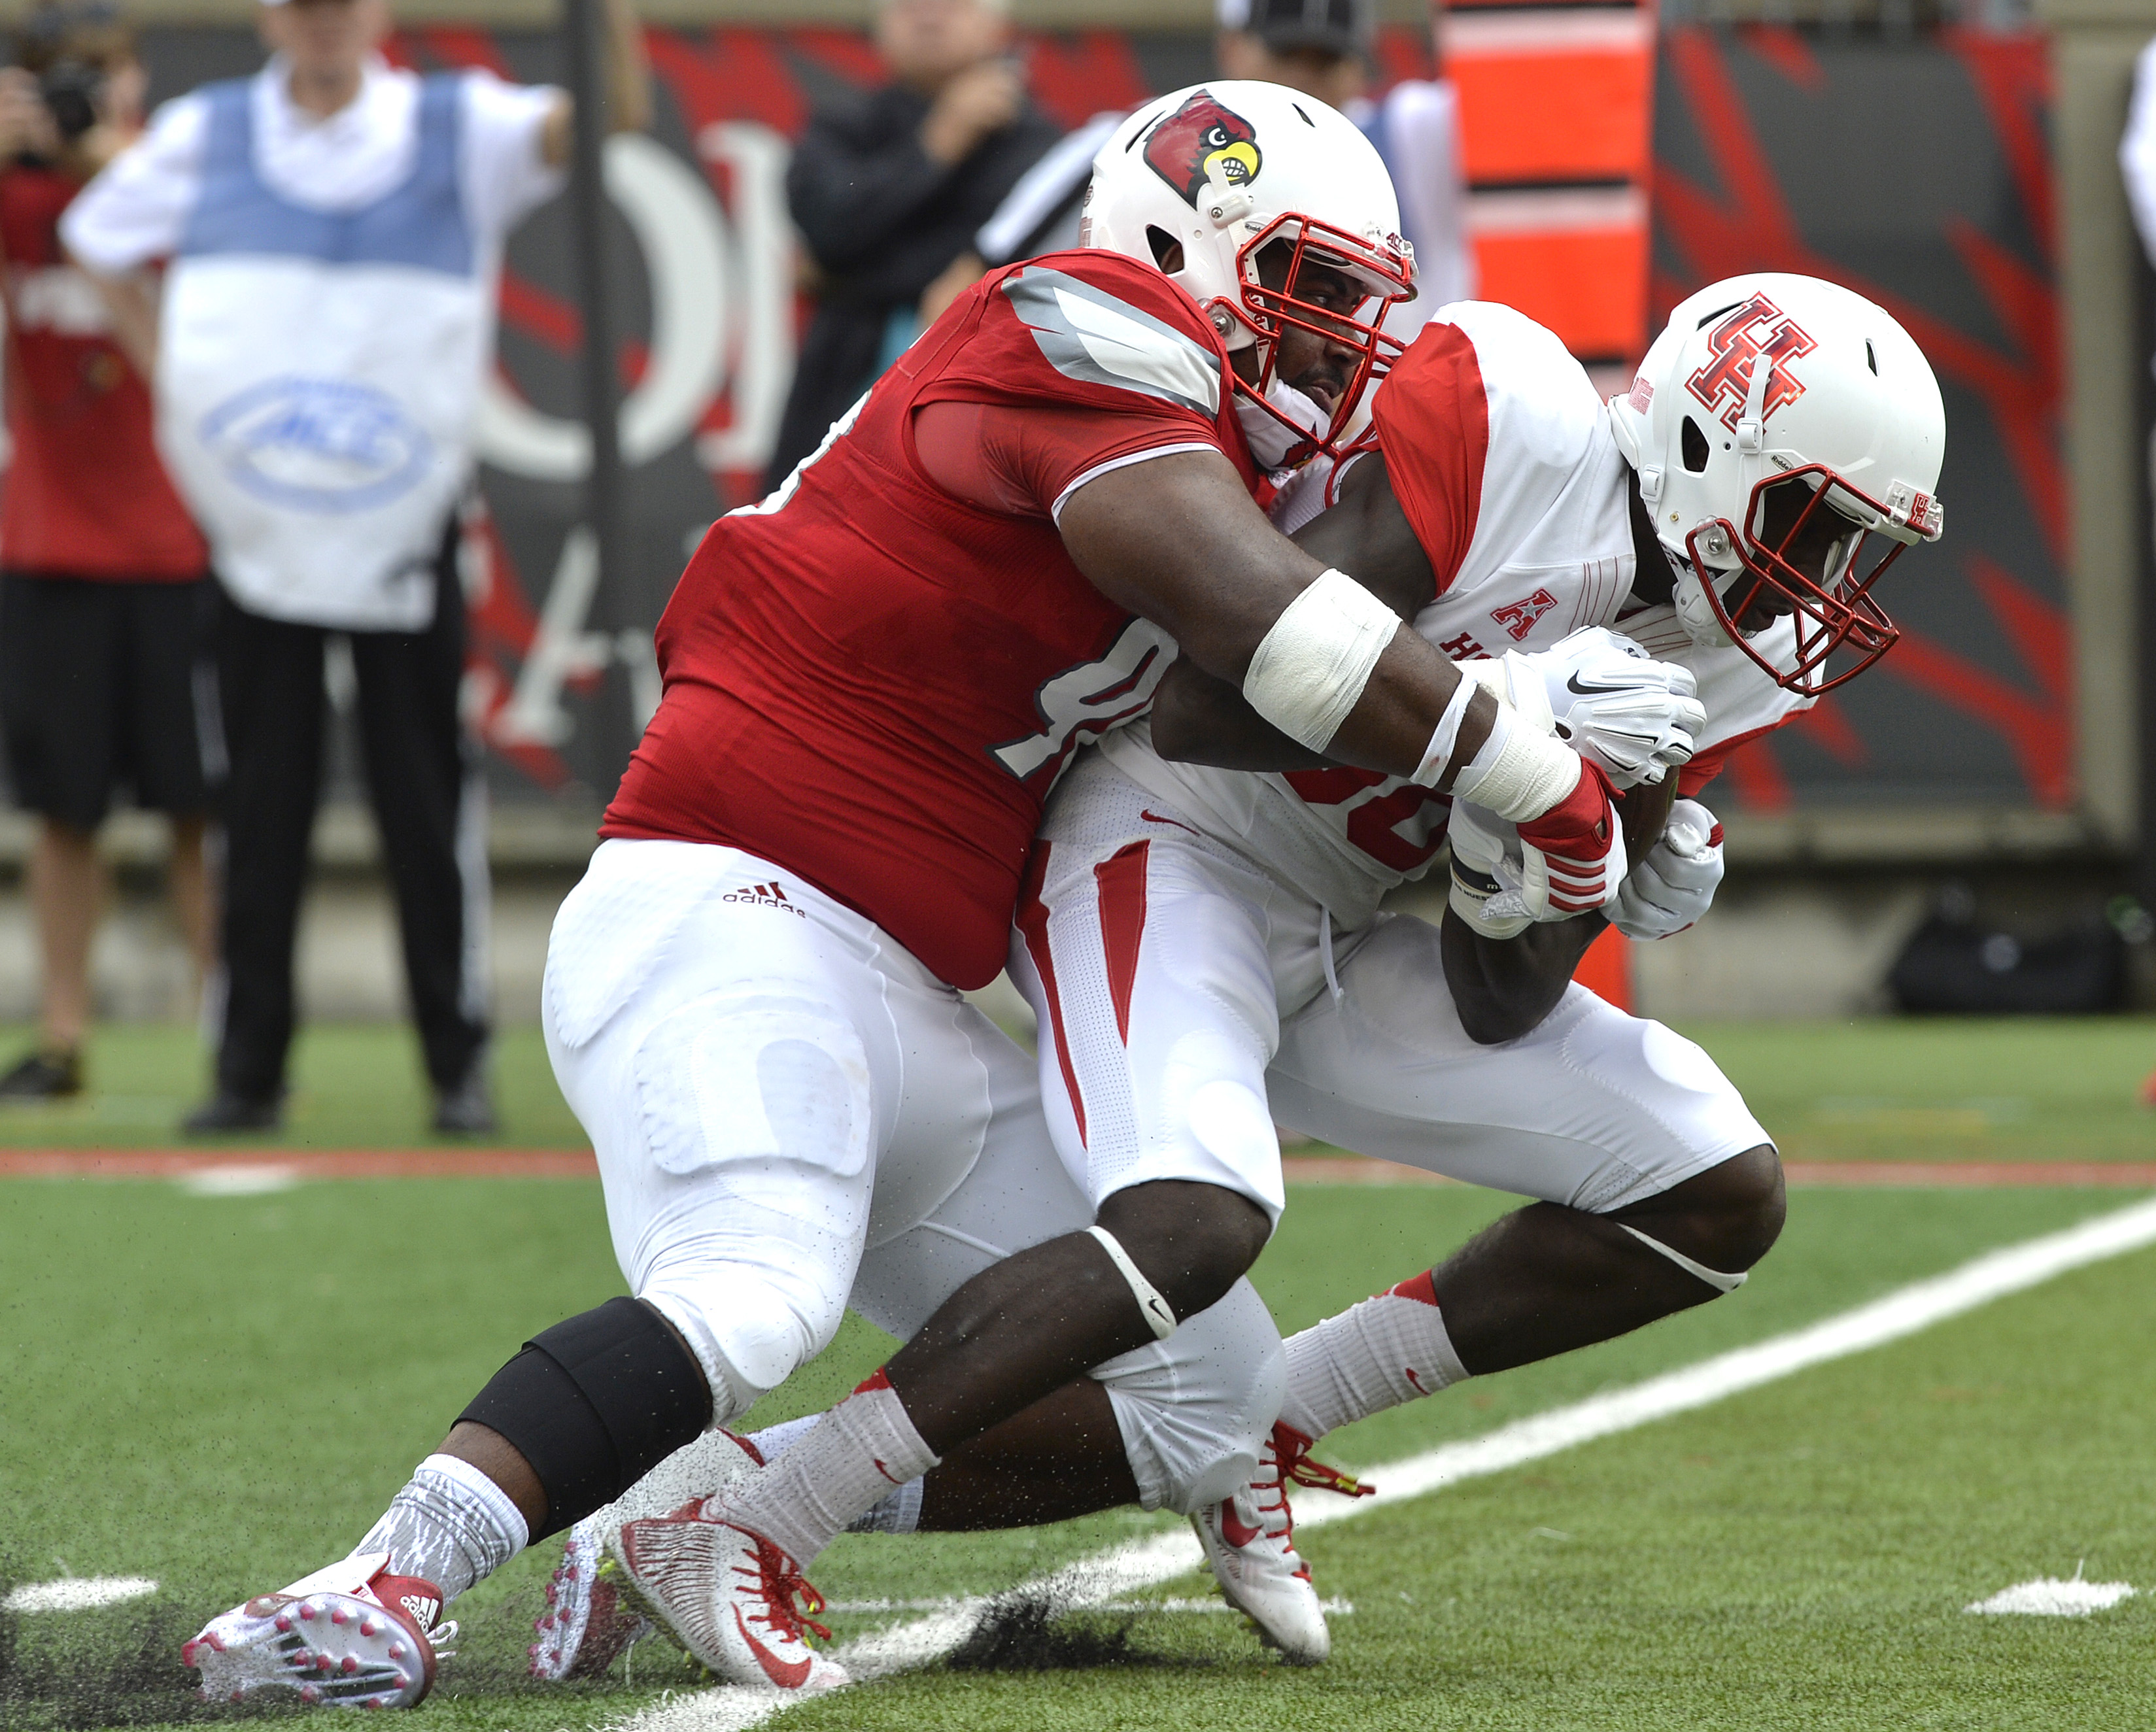 Louisville's Sheldon Rankins (98), brings down Houston's Steven Dunbar (88) during the first half of an NCAA college football game in Louisville, Ky. Saturday, Sept. 12, 2015. (AP Photo/Timothy D. Easley)